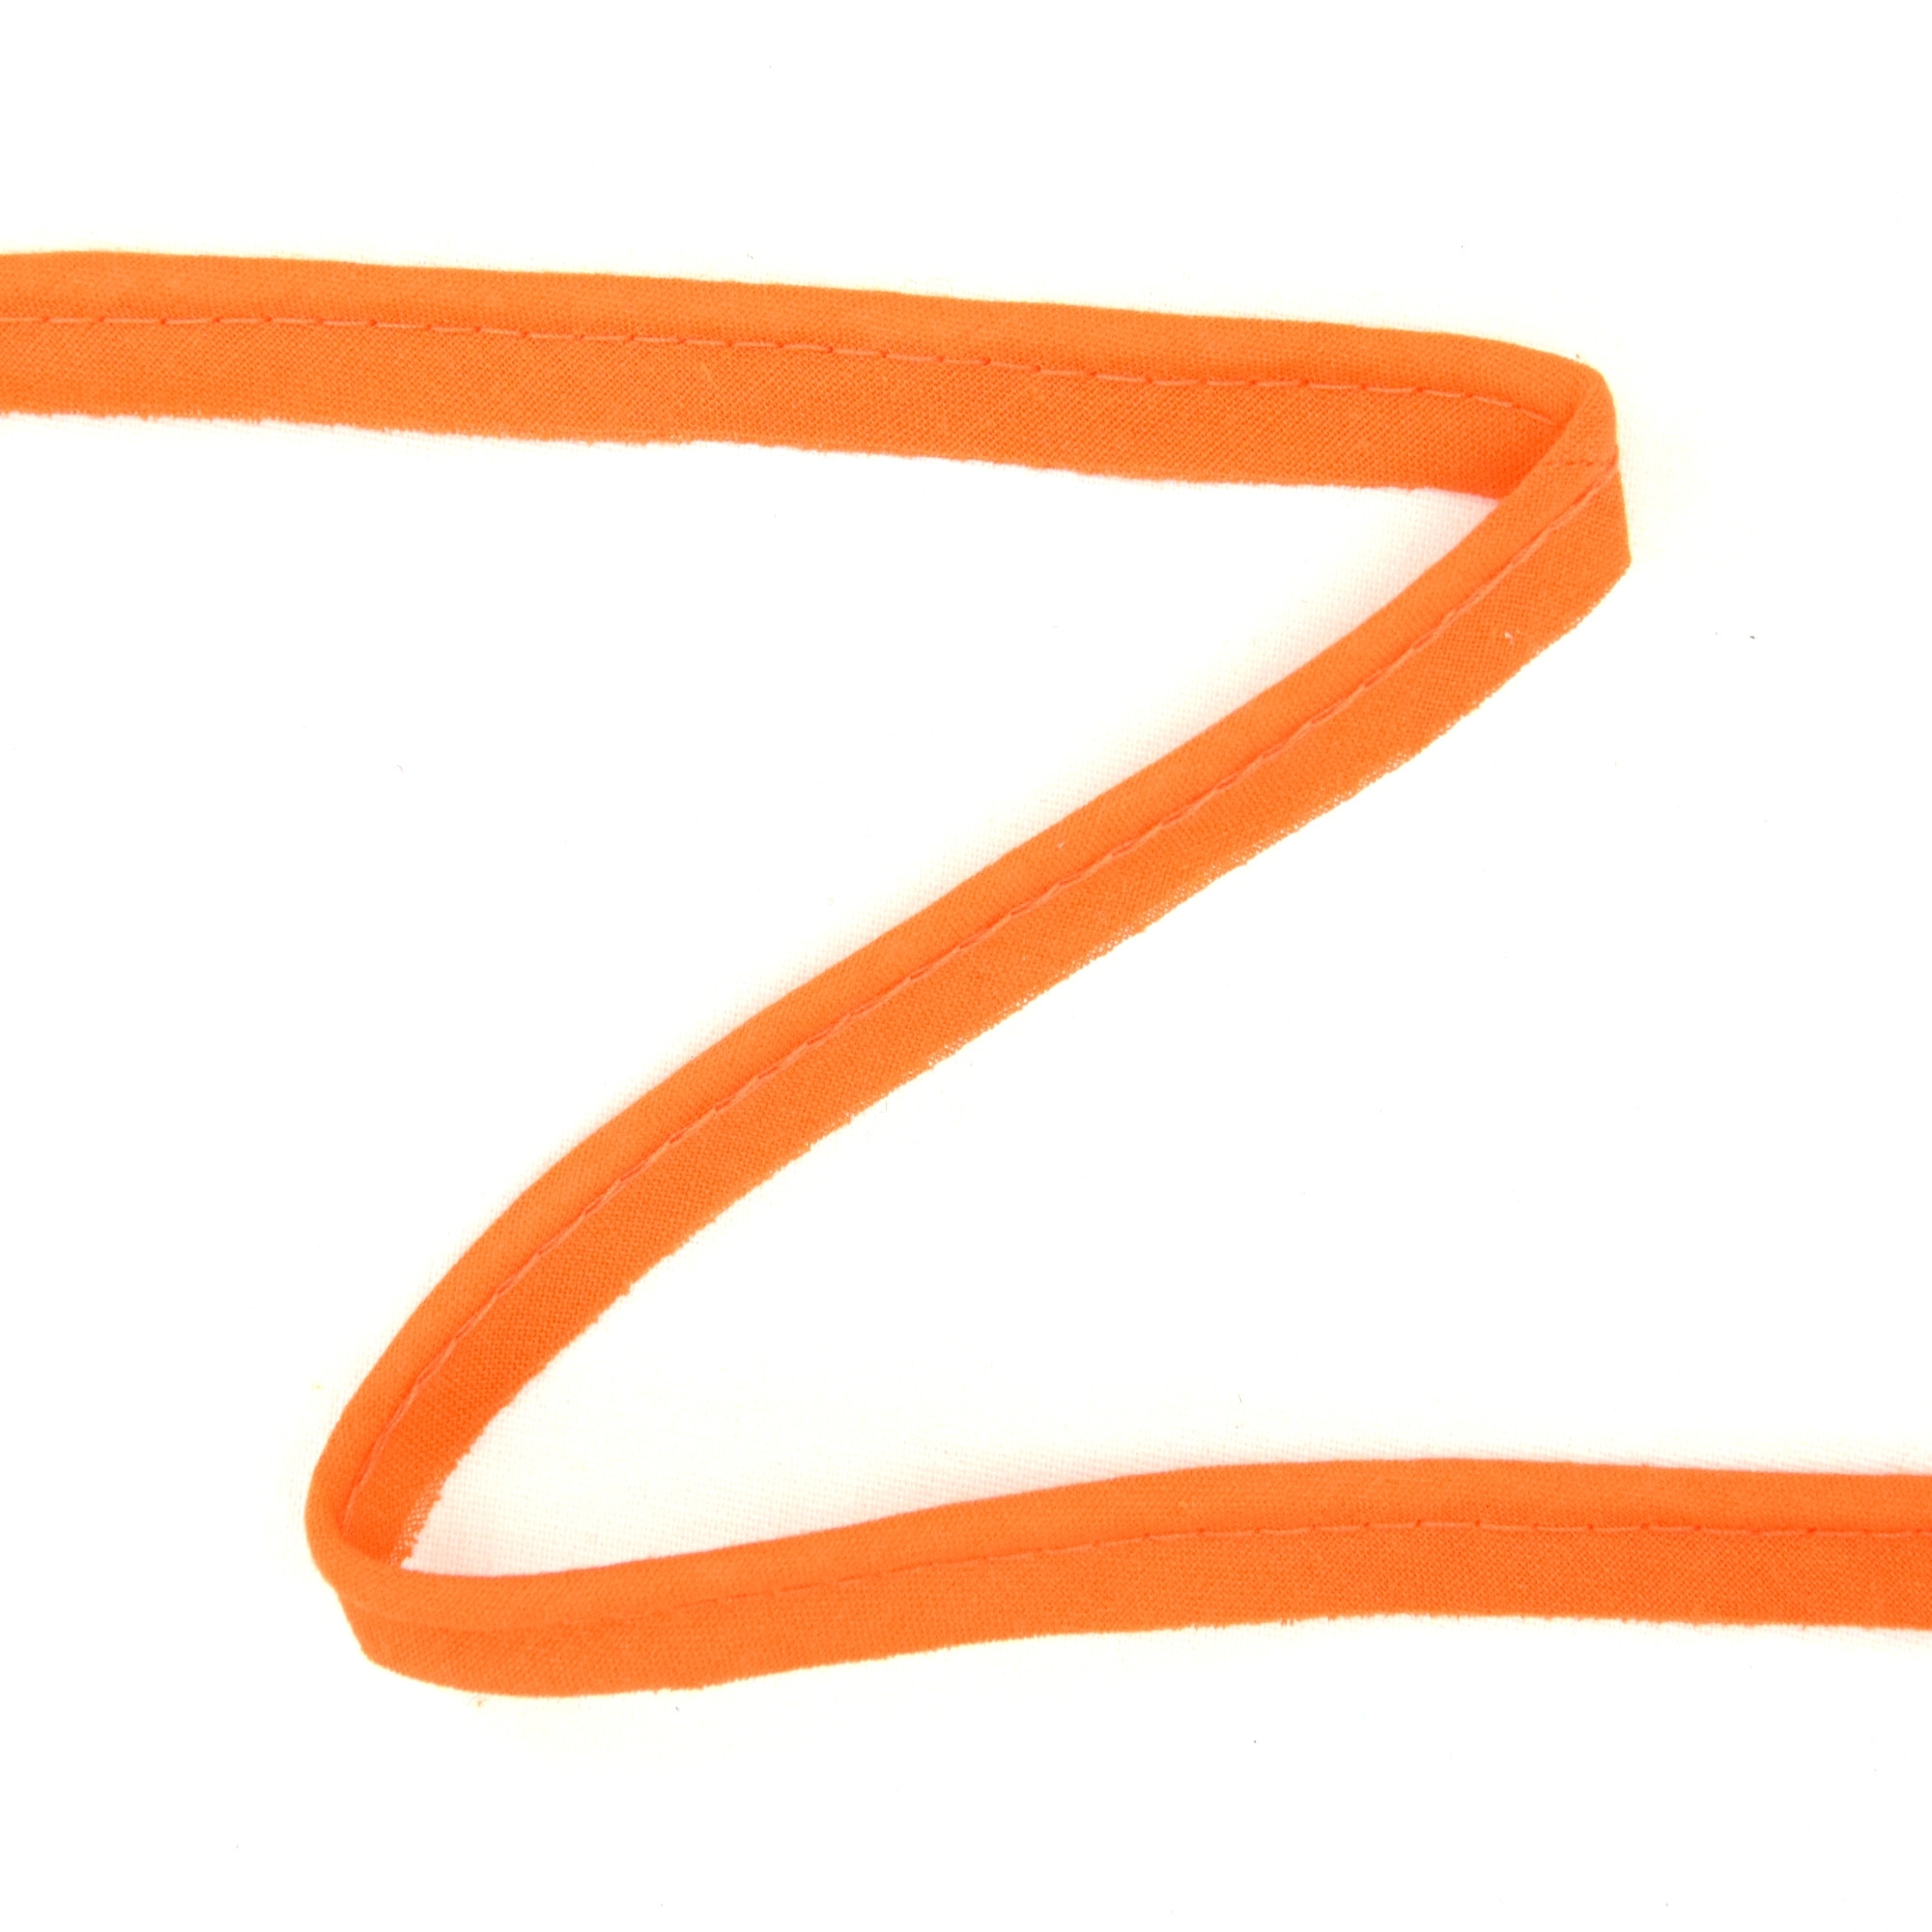 Paspelband, orange | 310-83 | orange